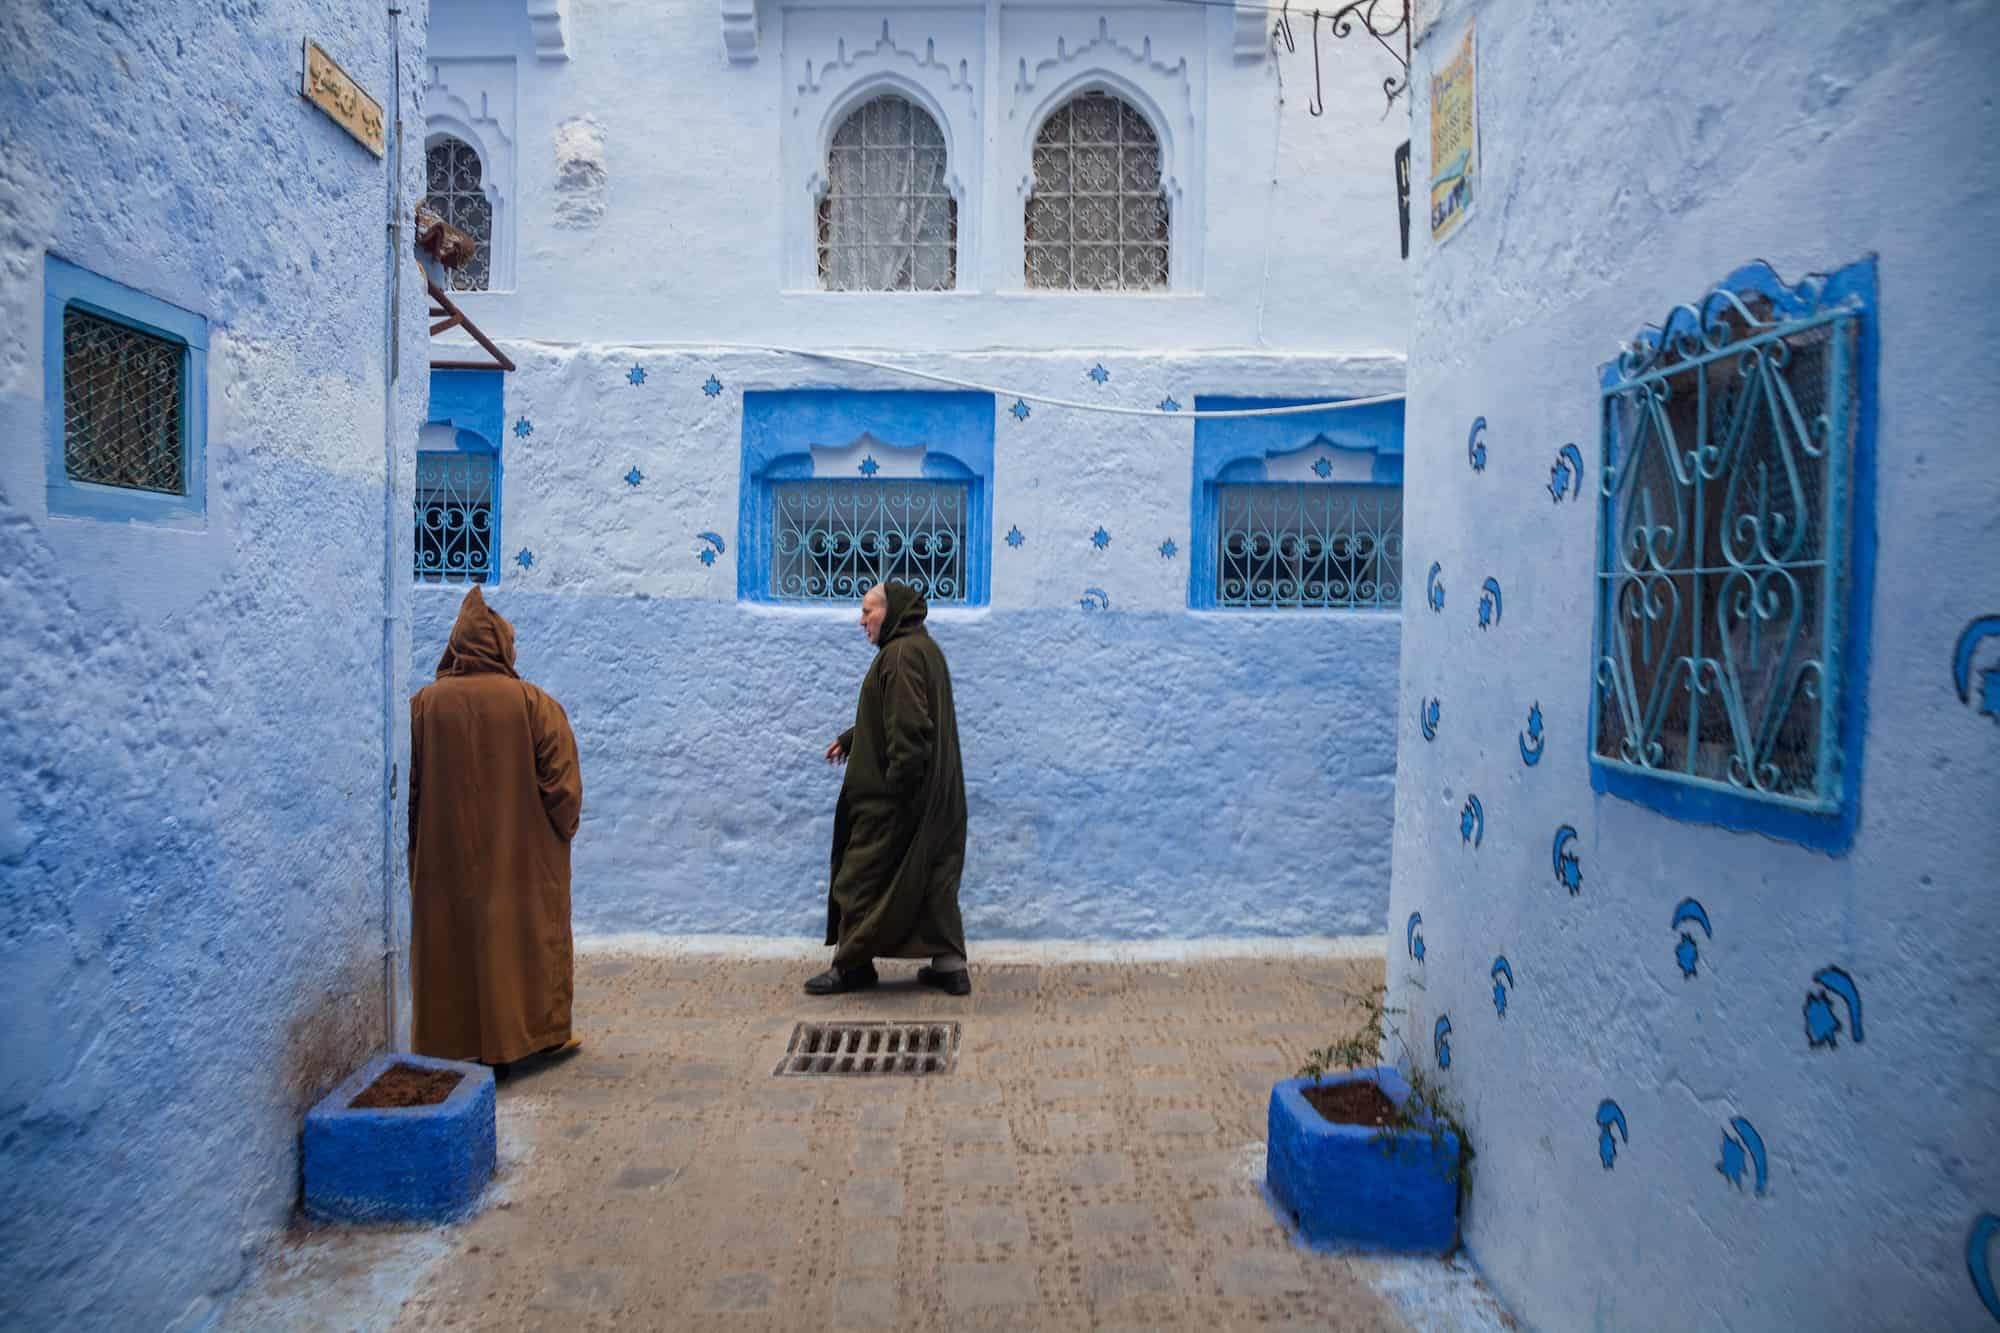 Chefchaouen Wander The Streets Morocco Blue City